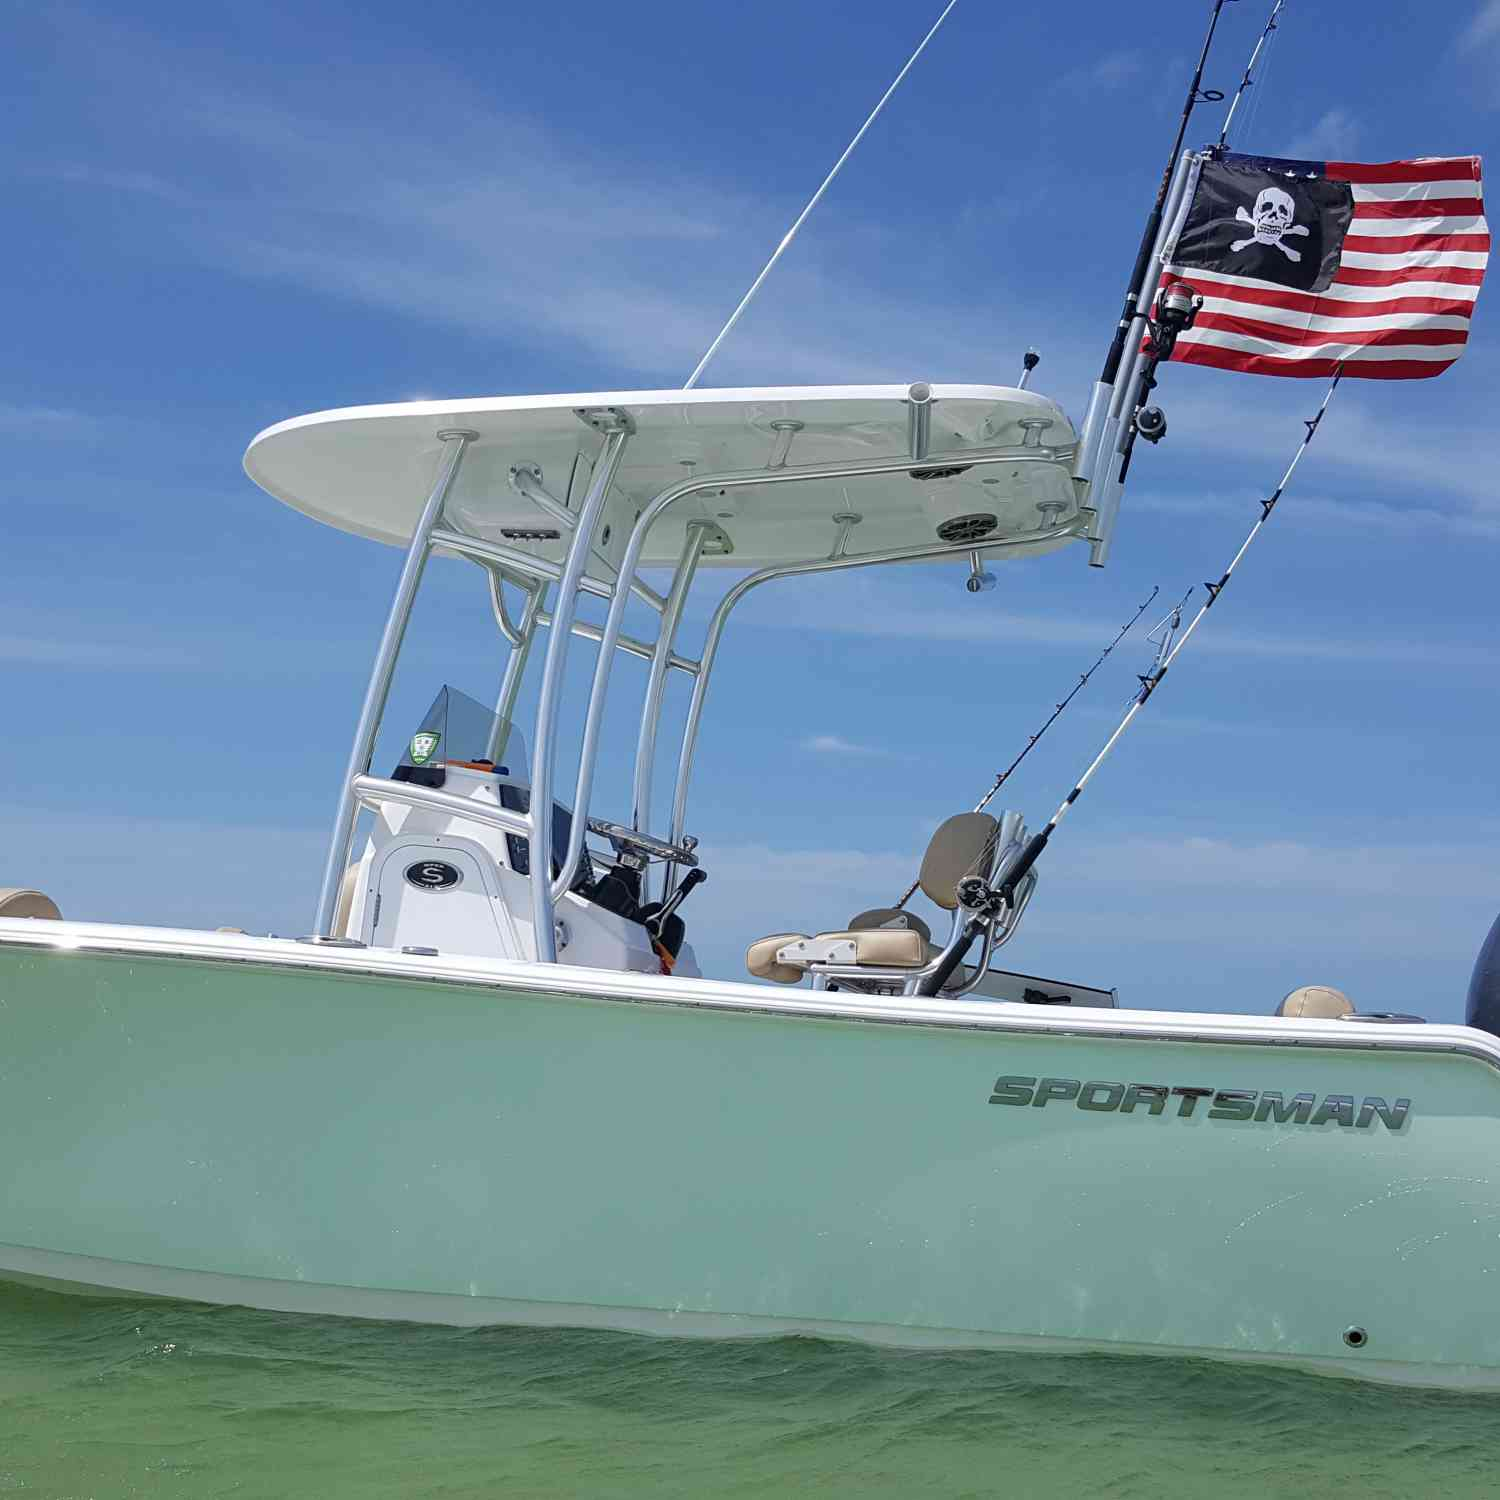 Title: Island Life - On board their Sportsman Open 212 Center Console - Location: Clearwater Fl. Participating in the Photo Contest #SportsmanAugust2019